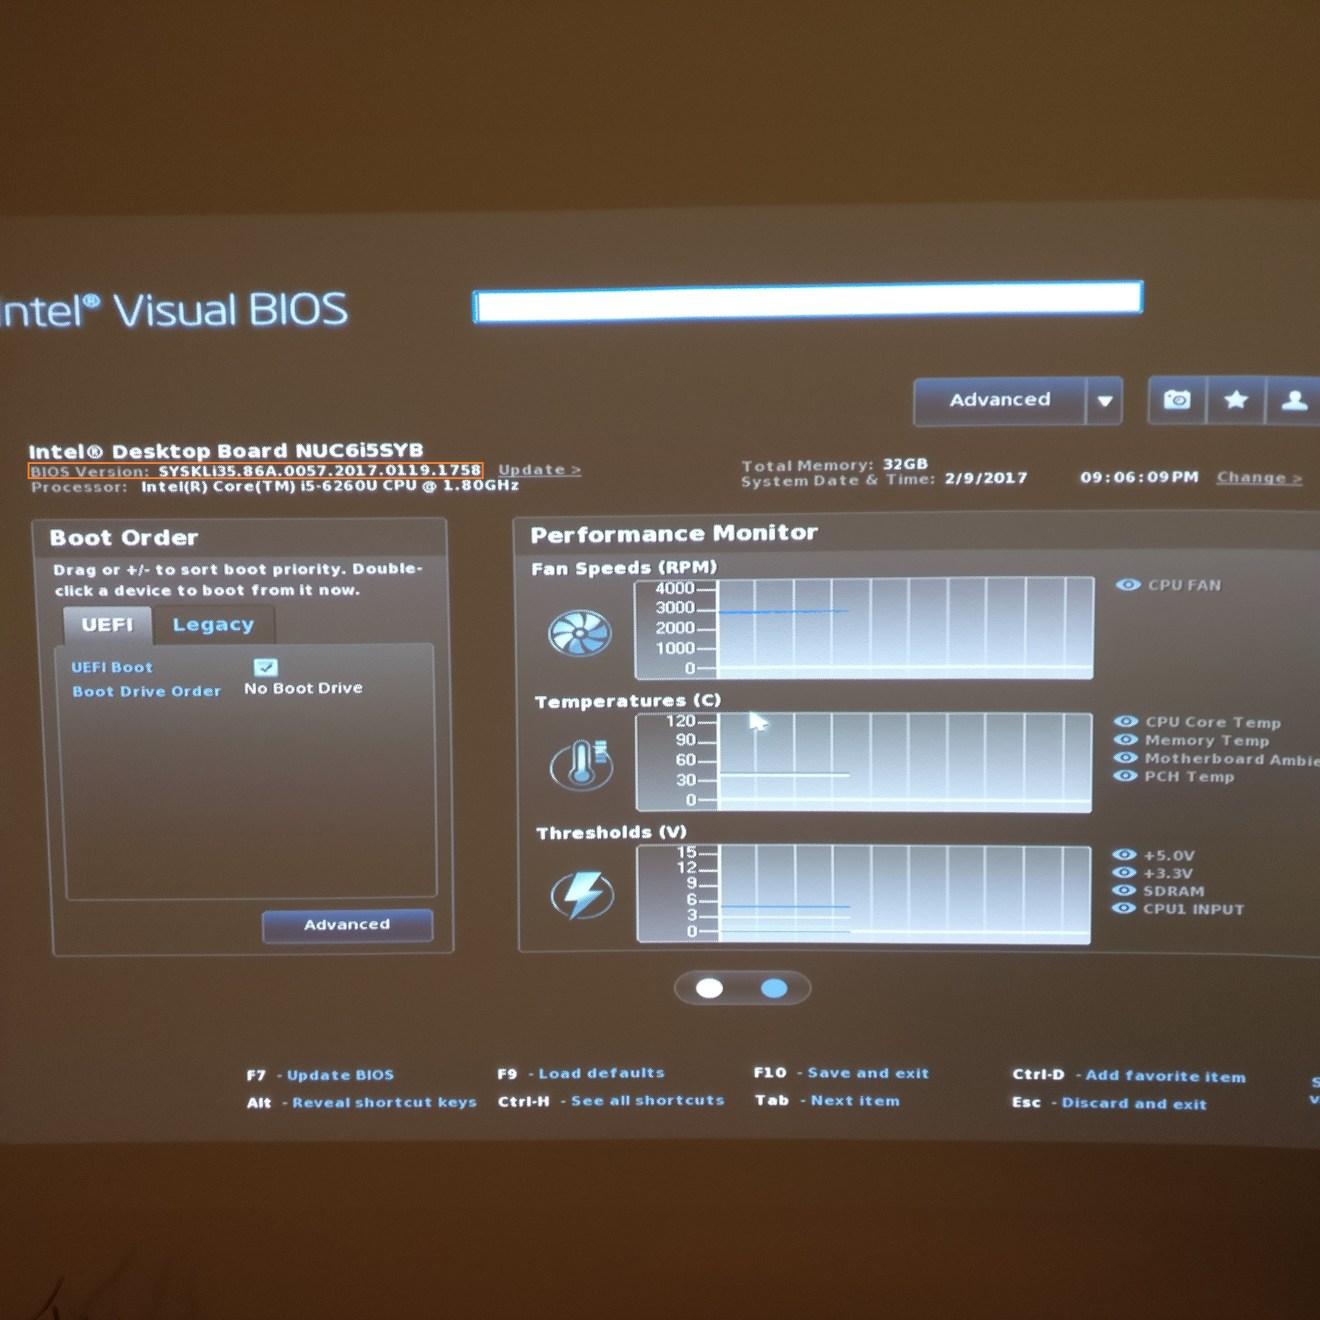 domalab.com Intel NUC BIOS update